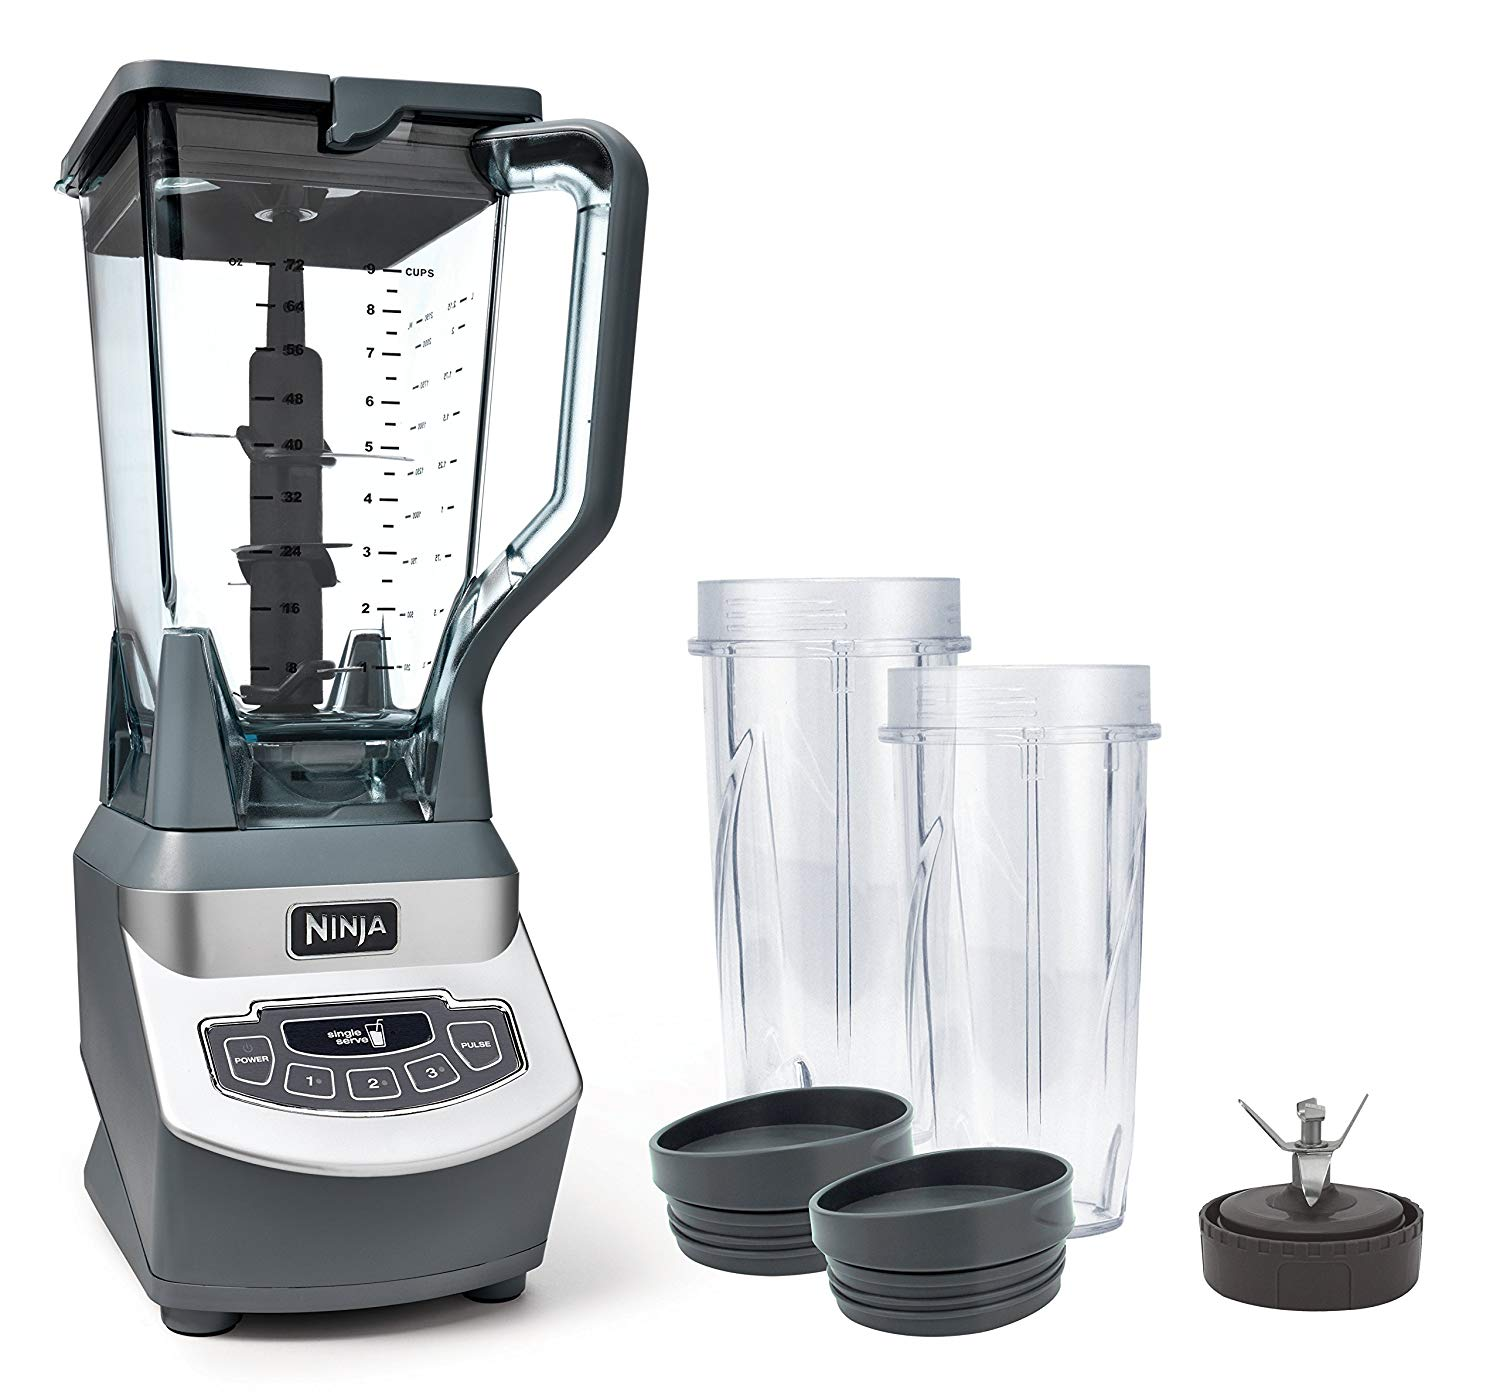 Blender: Ninja Professional Countertop Blender (BL660)